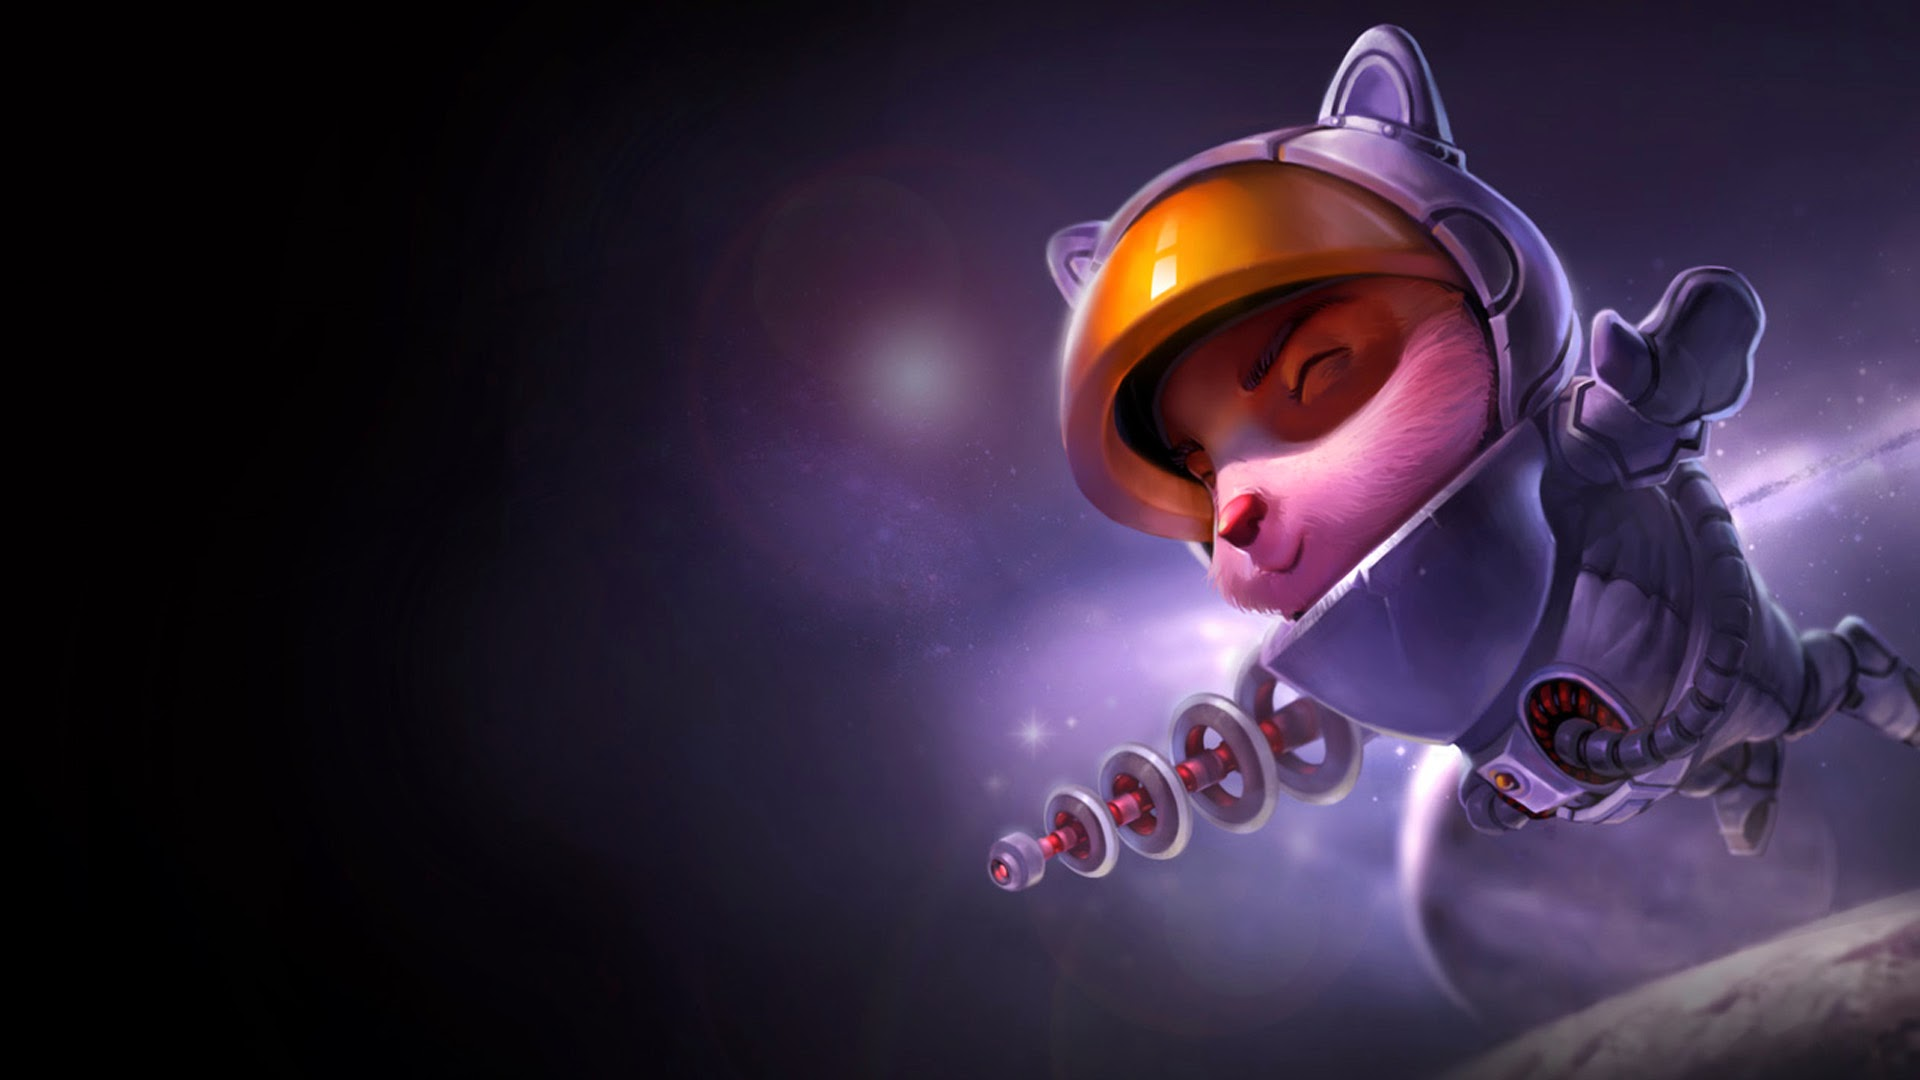 Teemo Astronaut LoL Skin Splash 7i Wallpaper HD